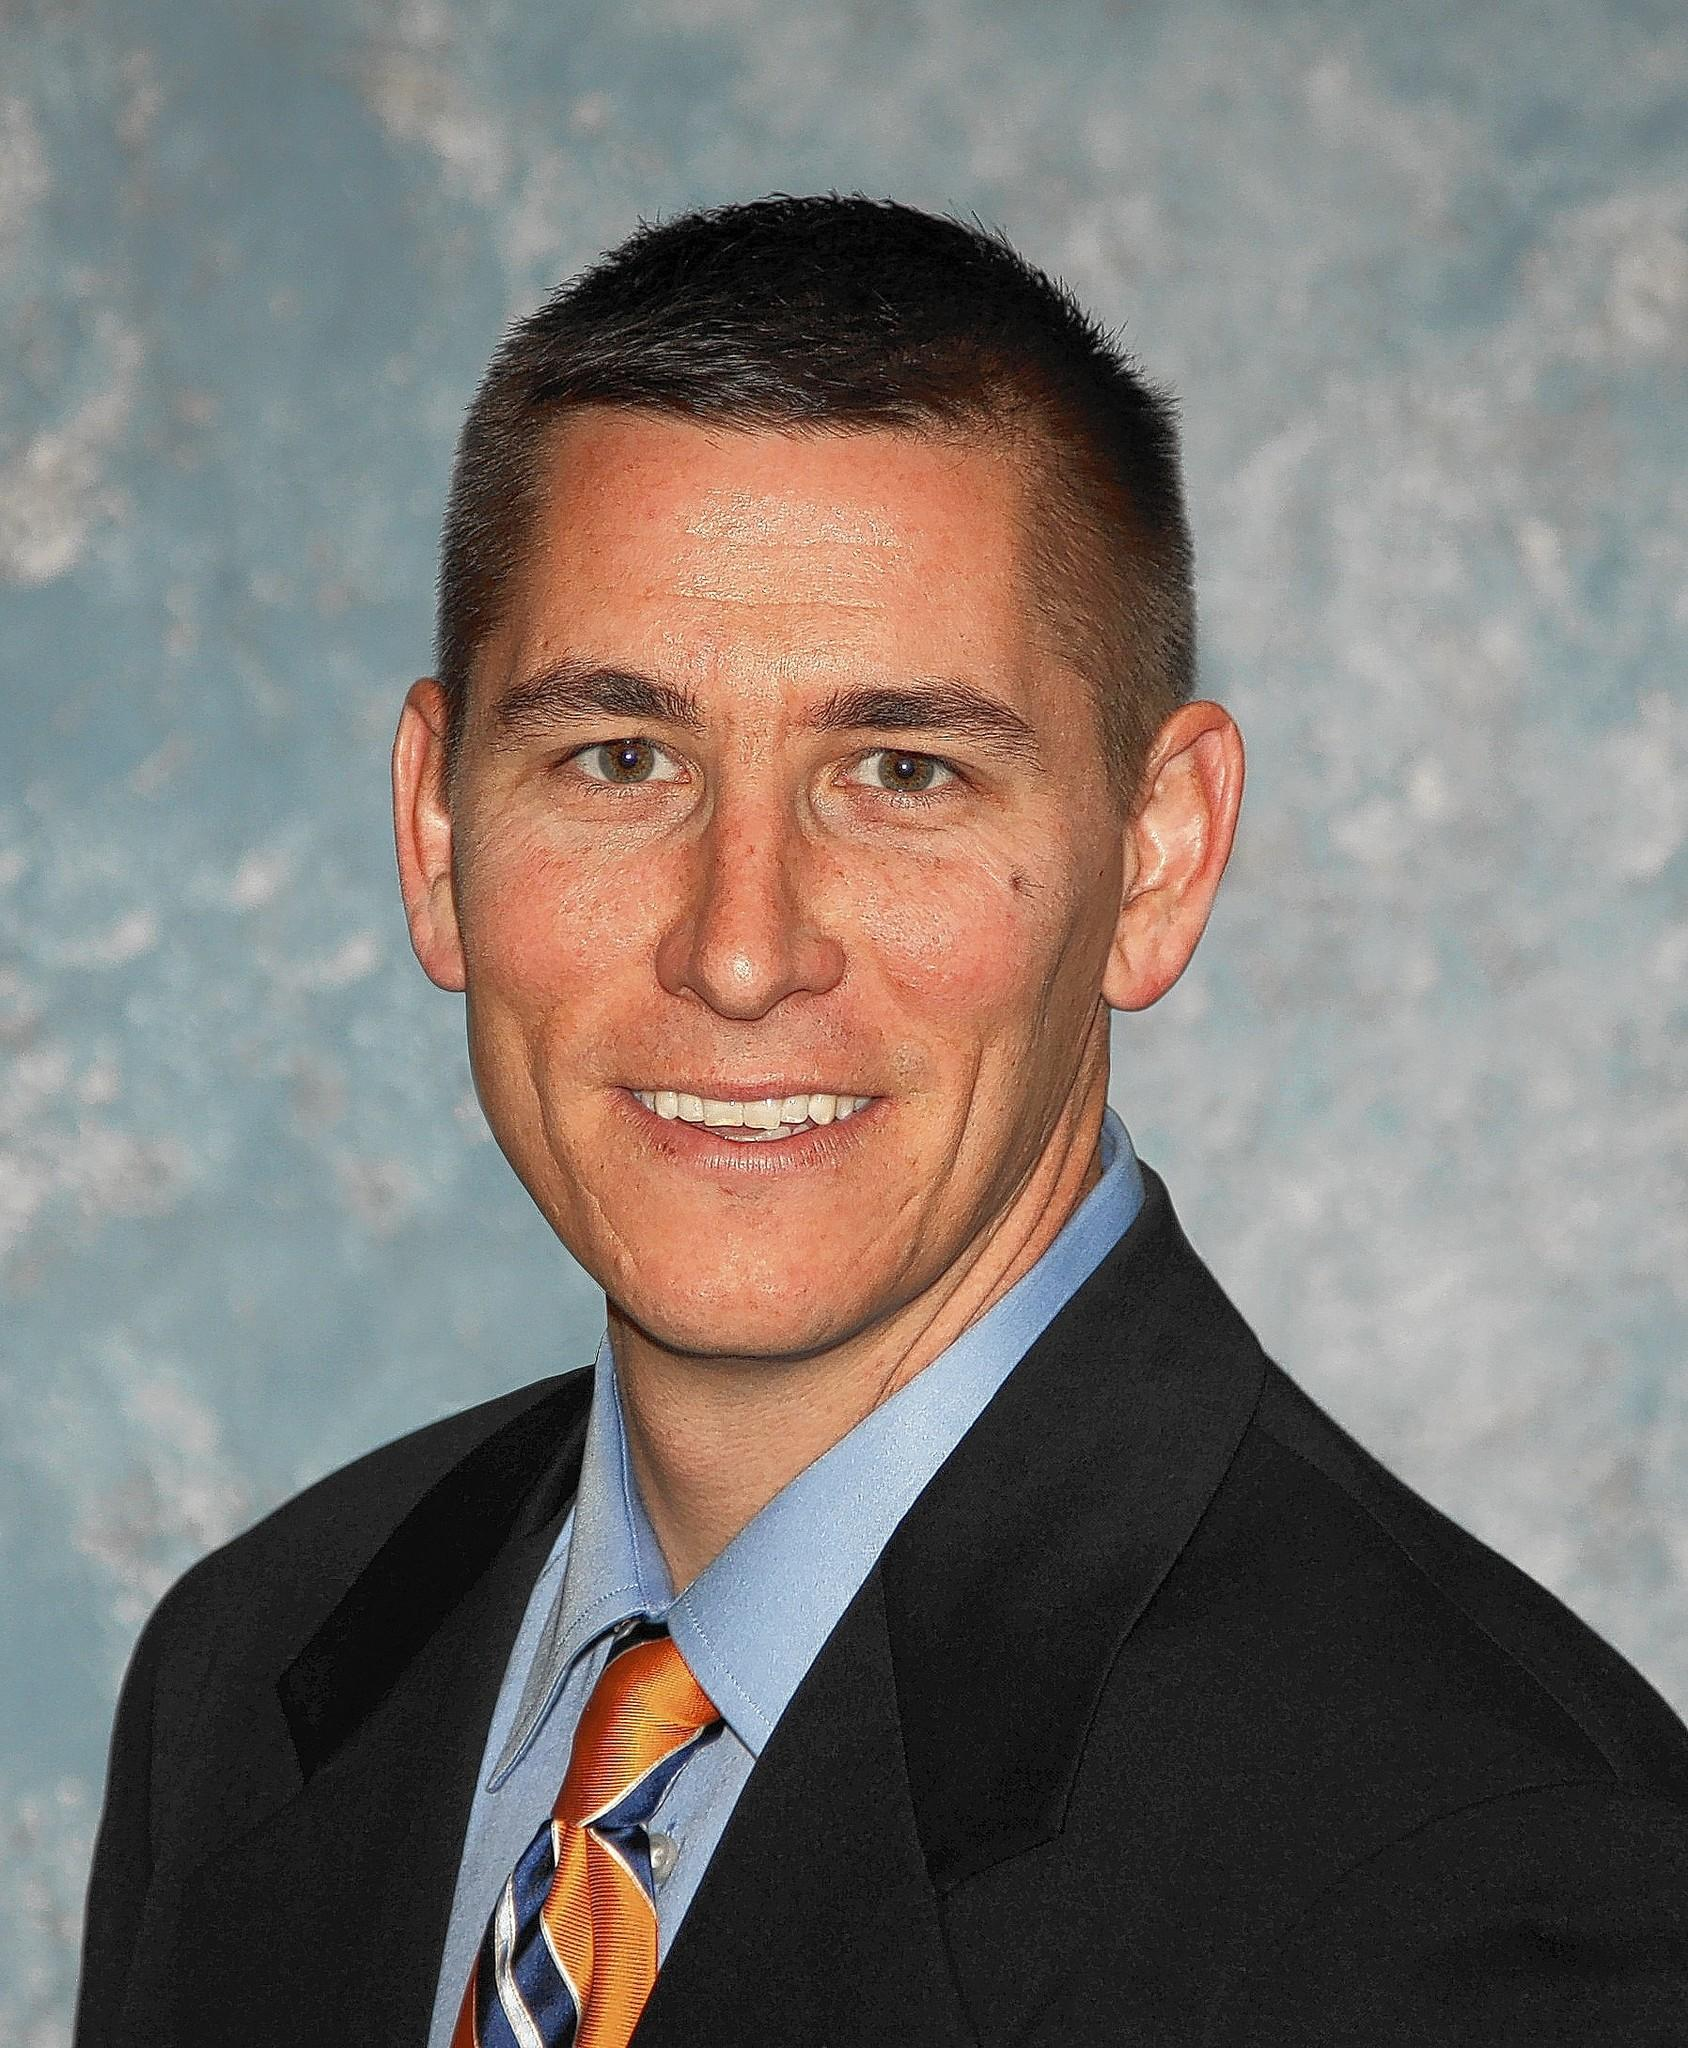 Brett Clark, who is currently executive director of communications and strategic planning, will be the new executive director of human resources starting July 1.